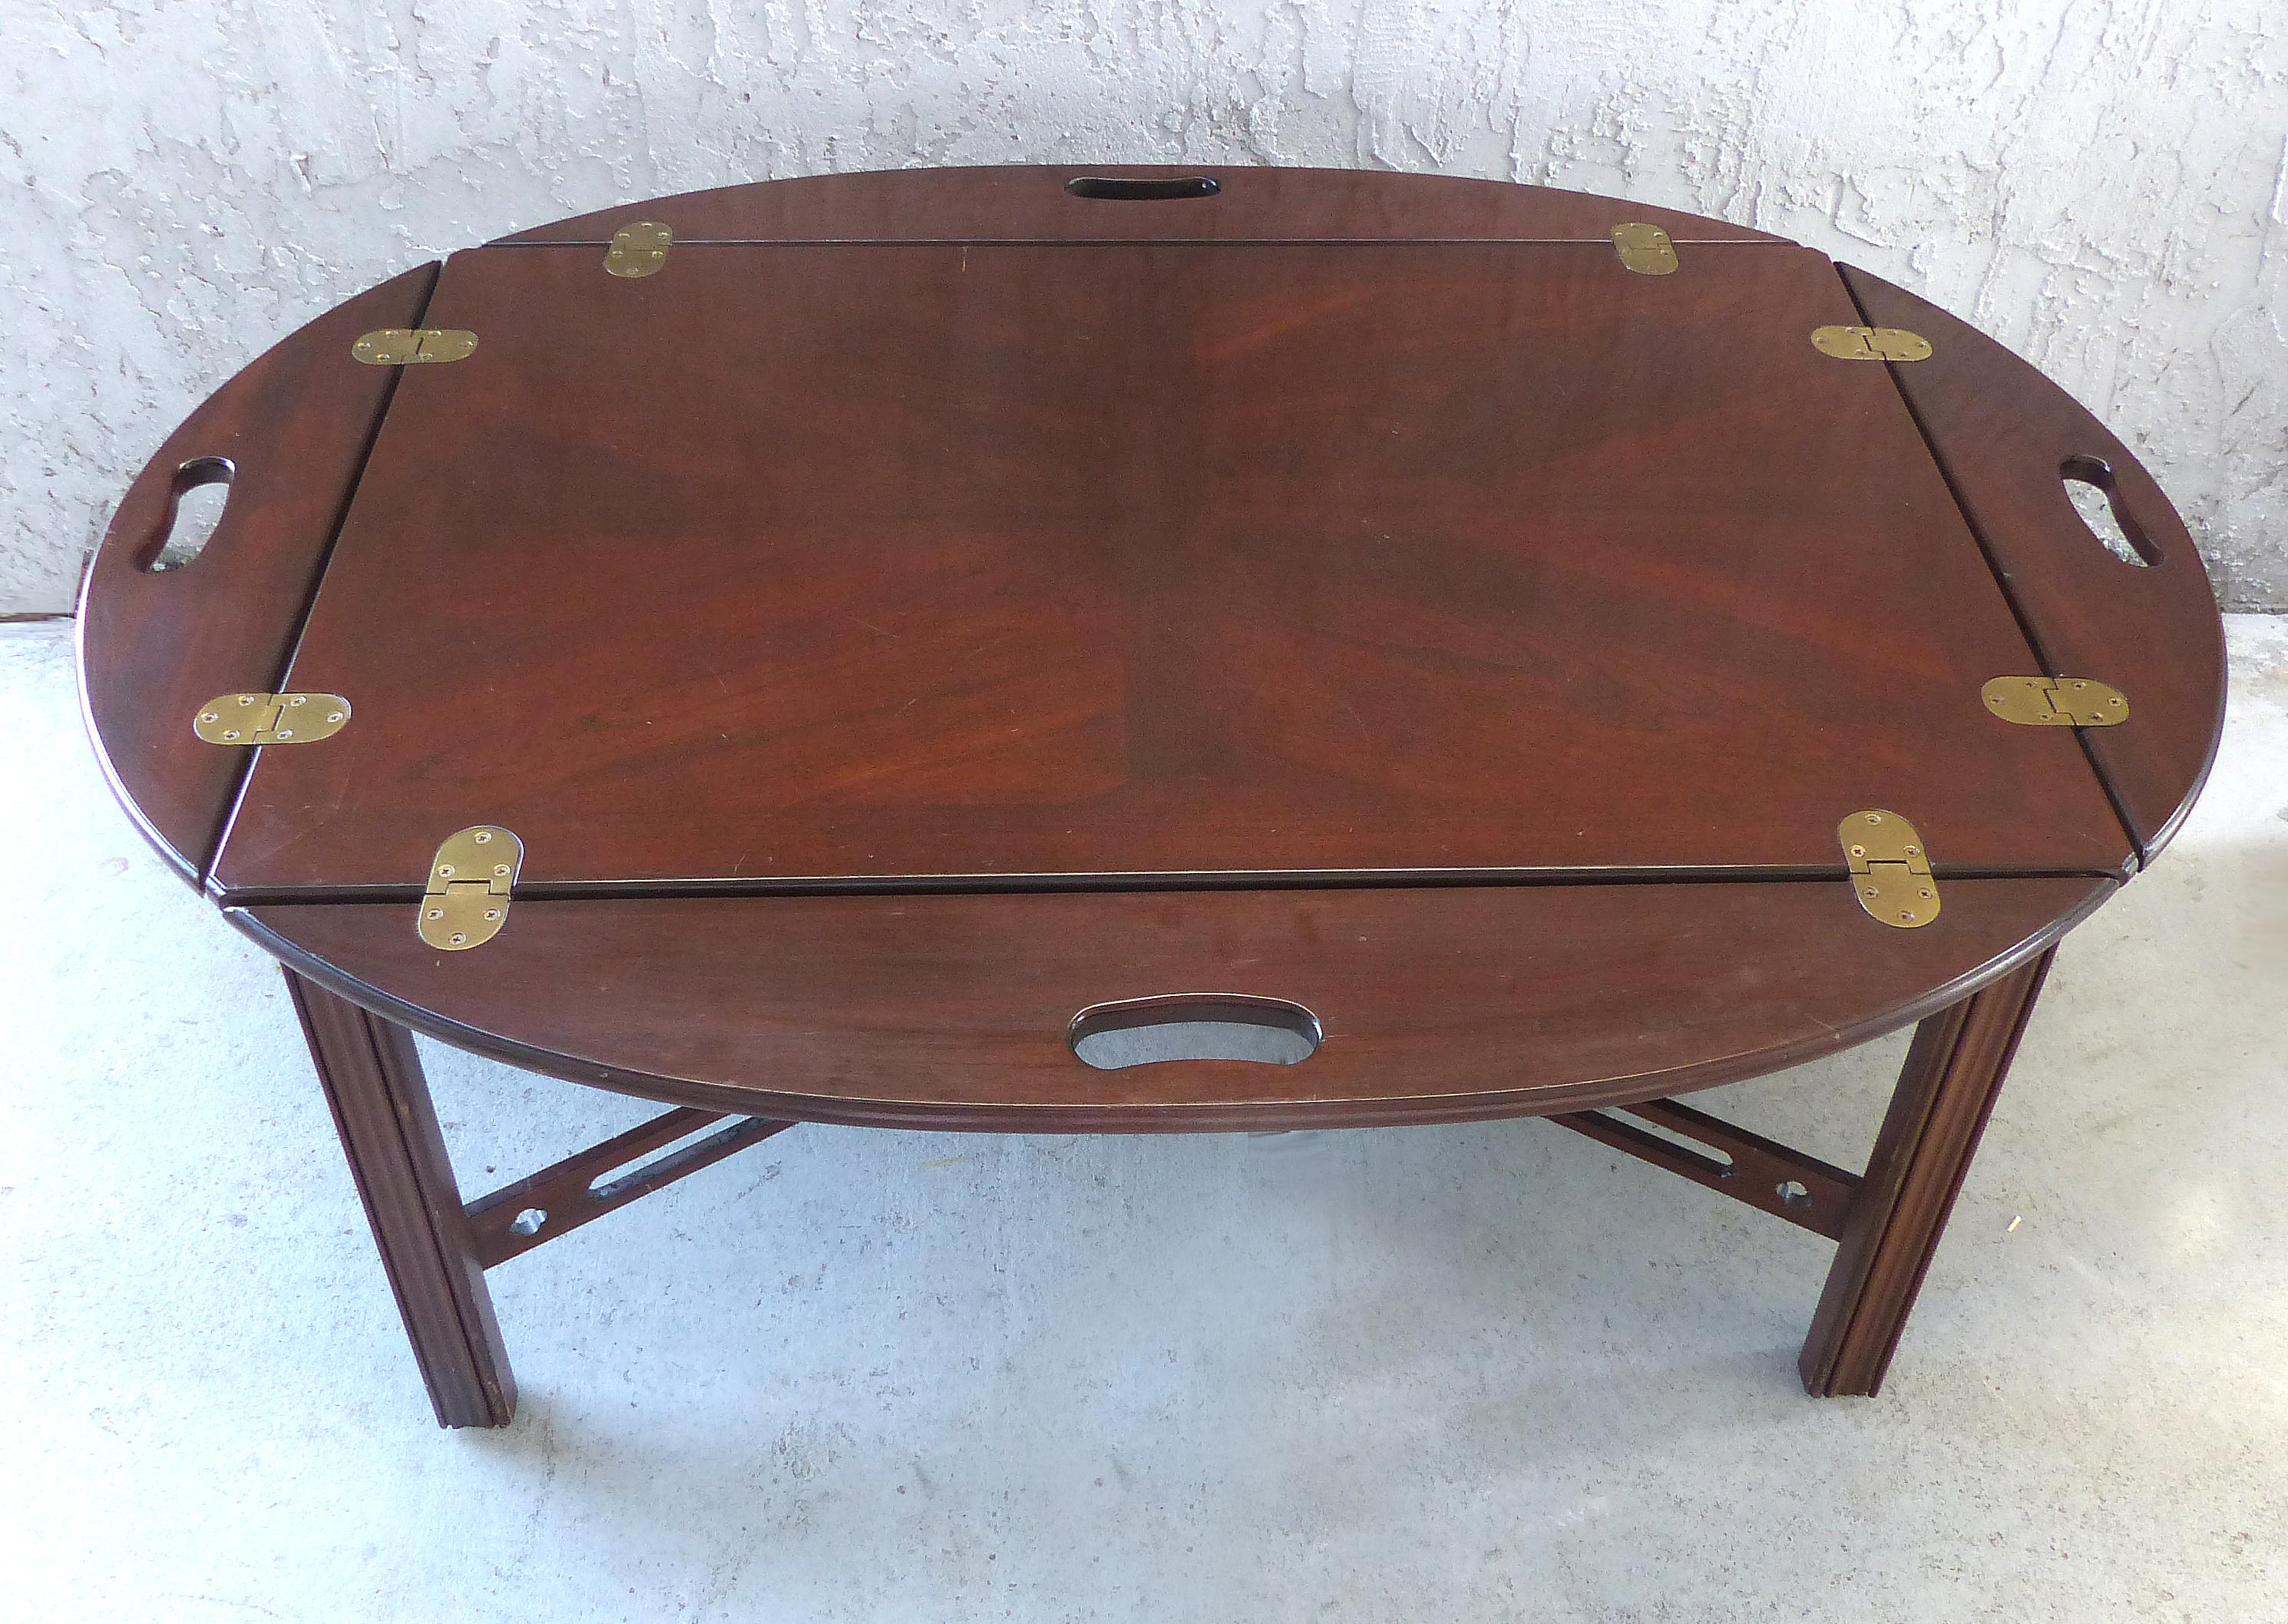 Delicieux Ethan Allen Butler Tray Coffee Table   Image 3 Of 11